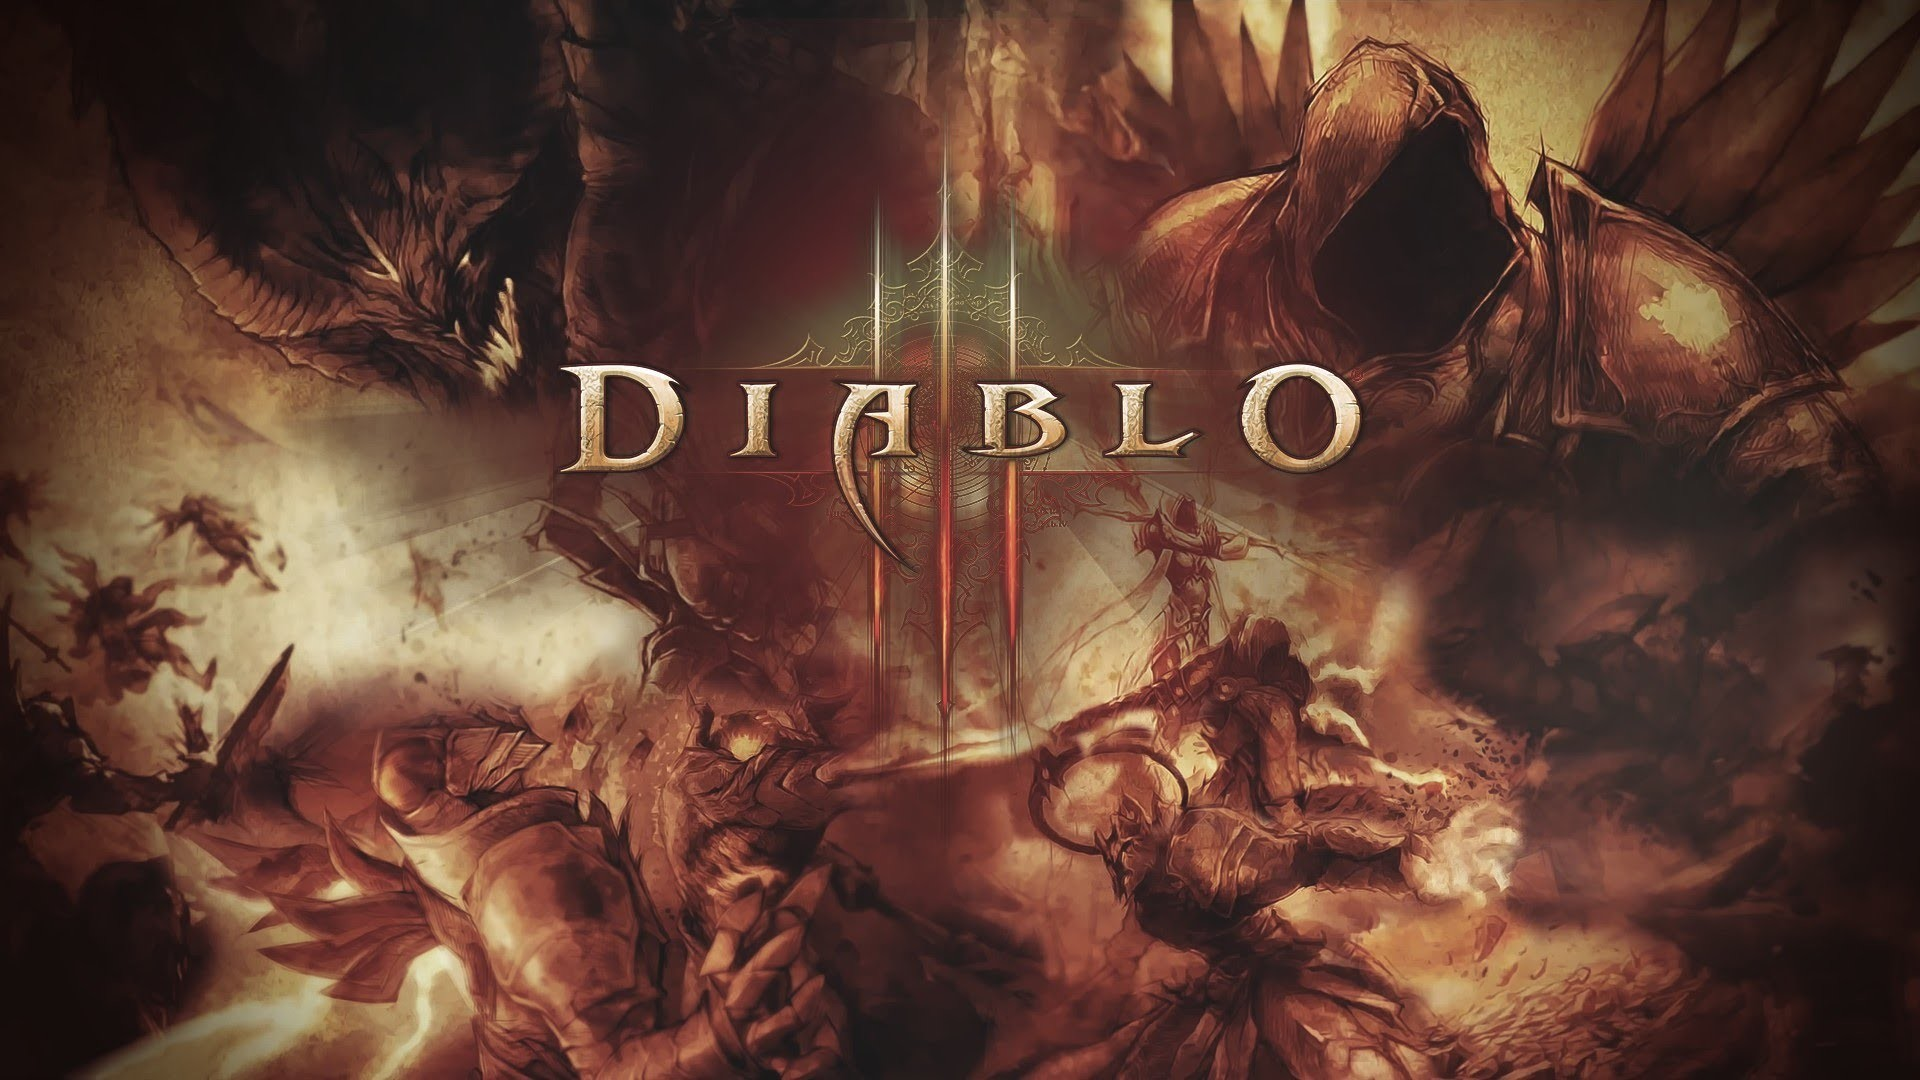 Download Diablo Face Look Fire Wallpaper Wallpaper   Diablo Games    Pinterest   Diablo game, Wallpaper and Dark gothic